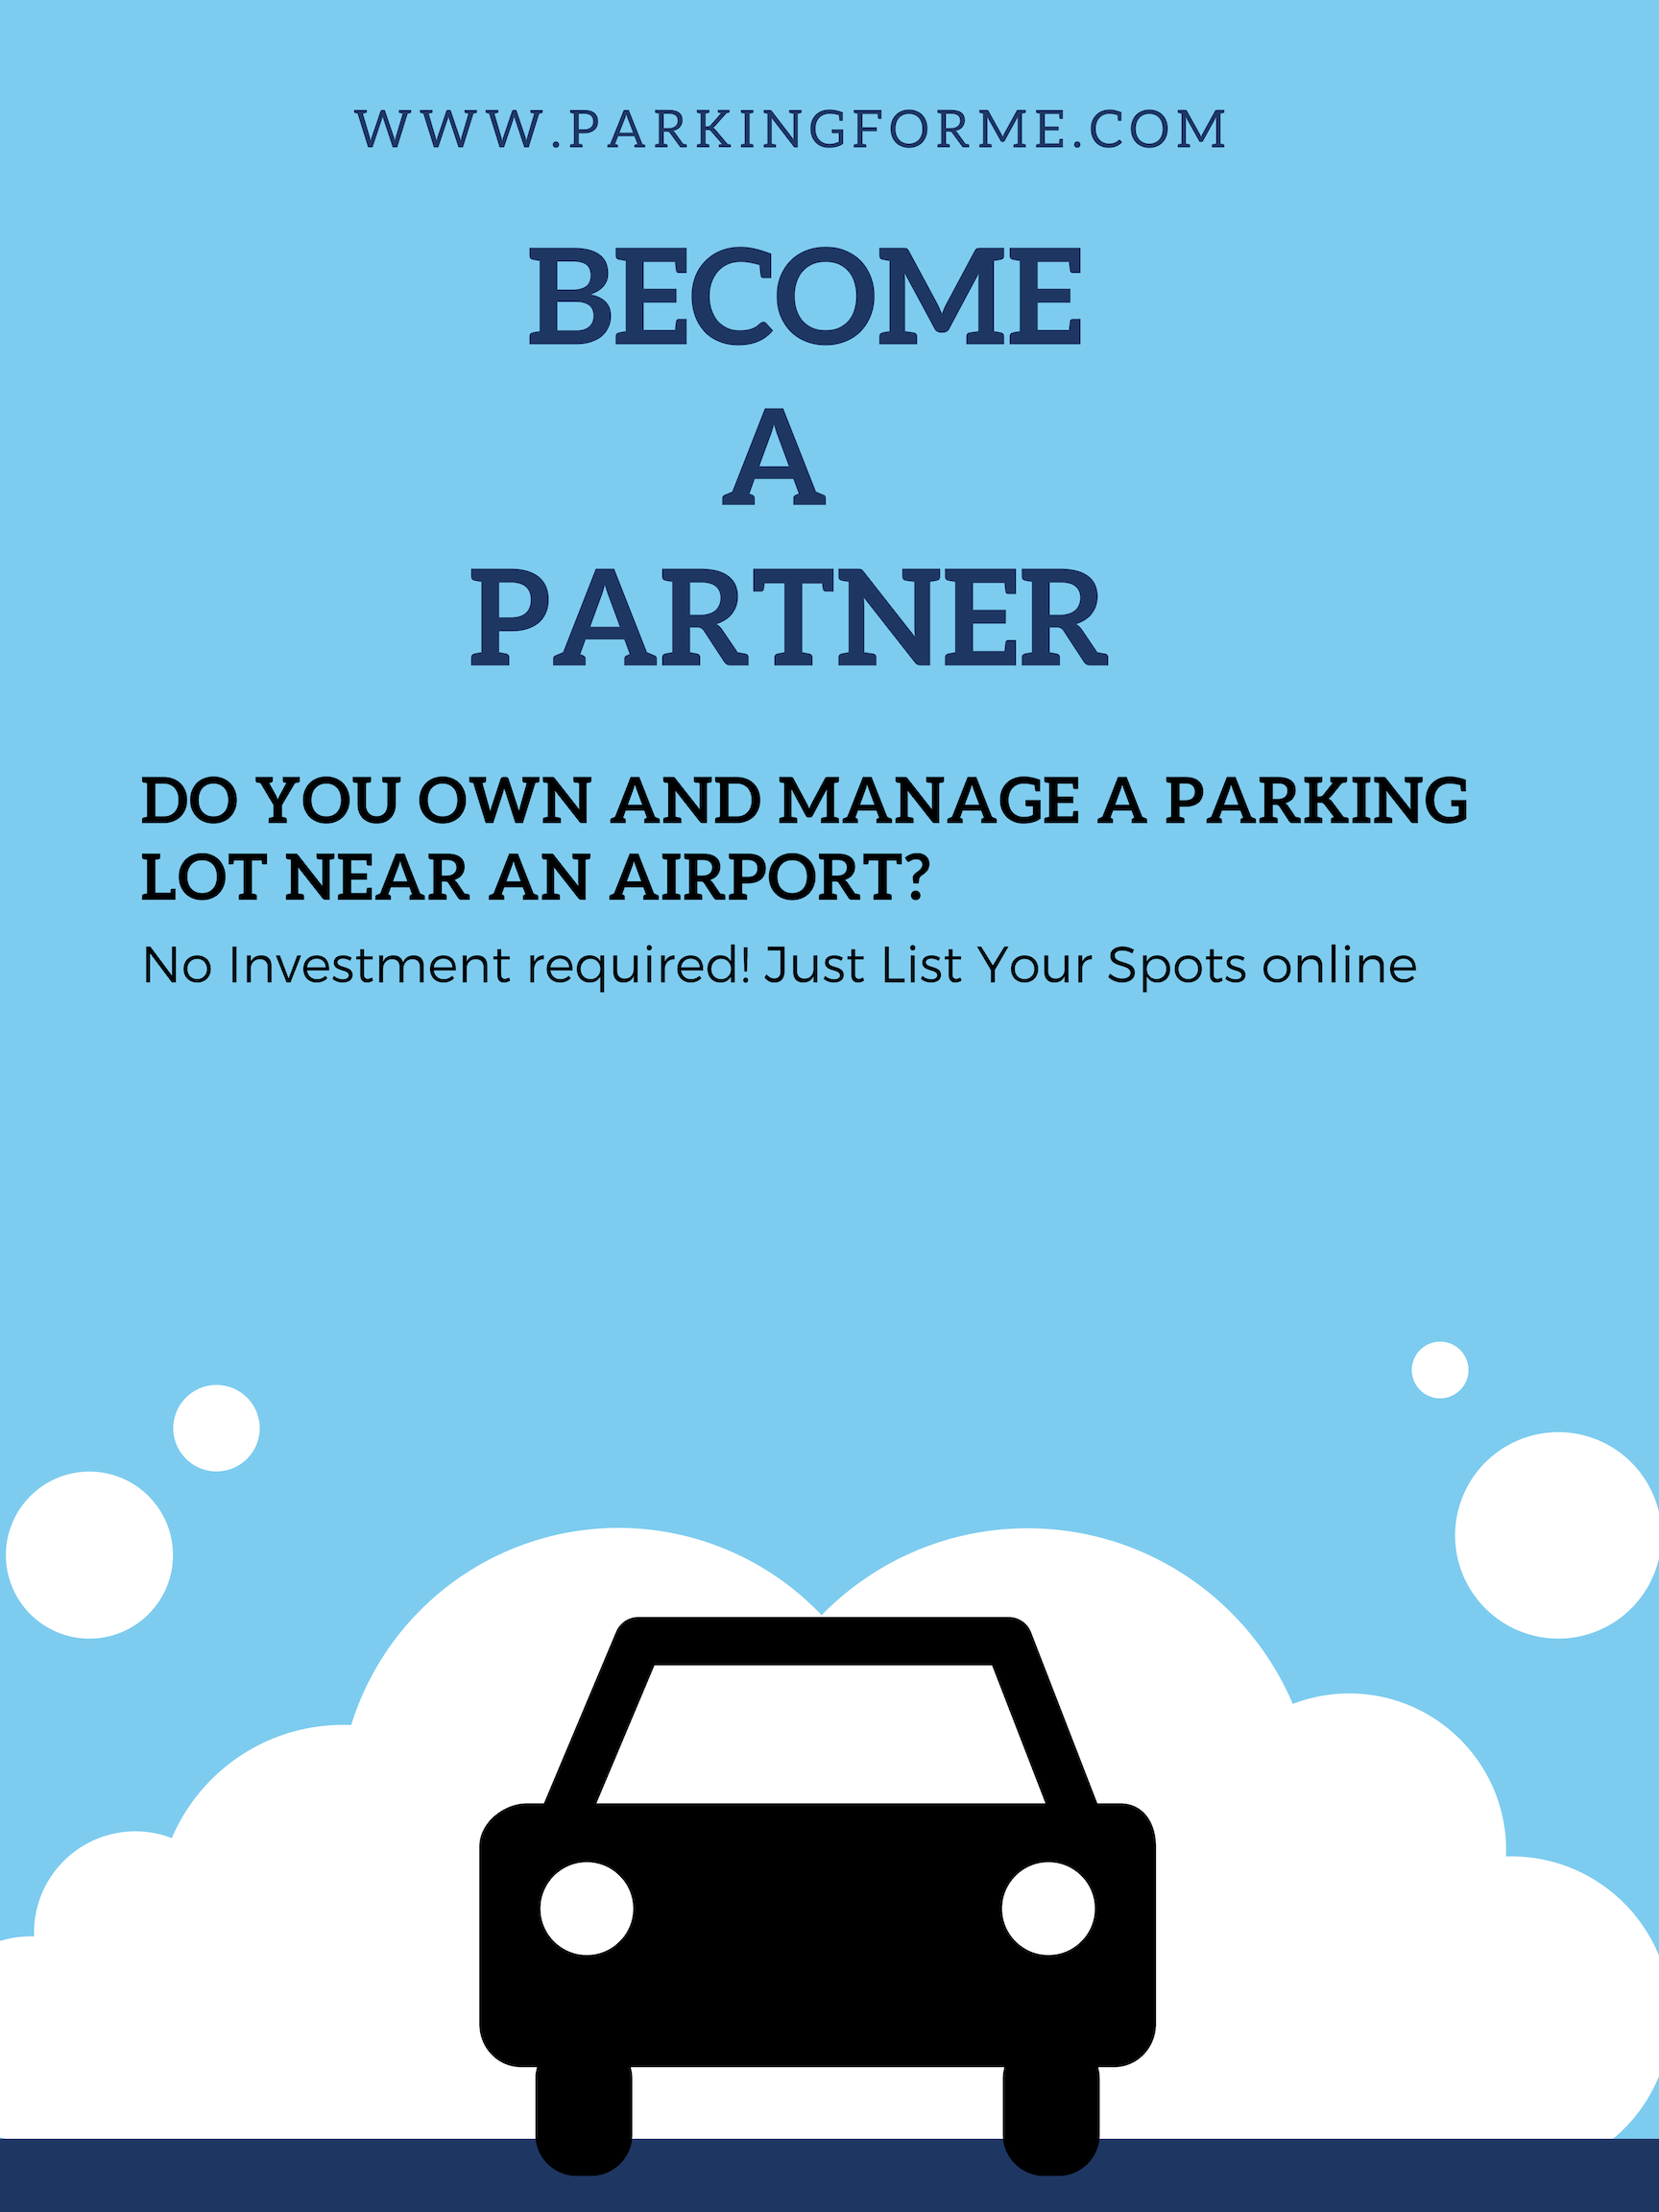 Do you own or manage a parking lot/garage near the Airport